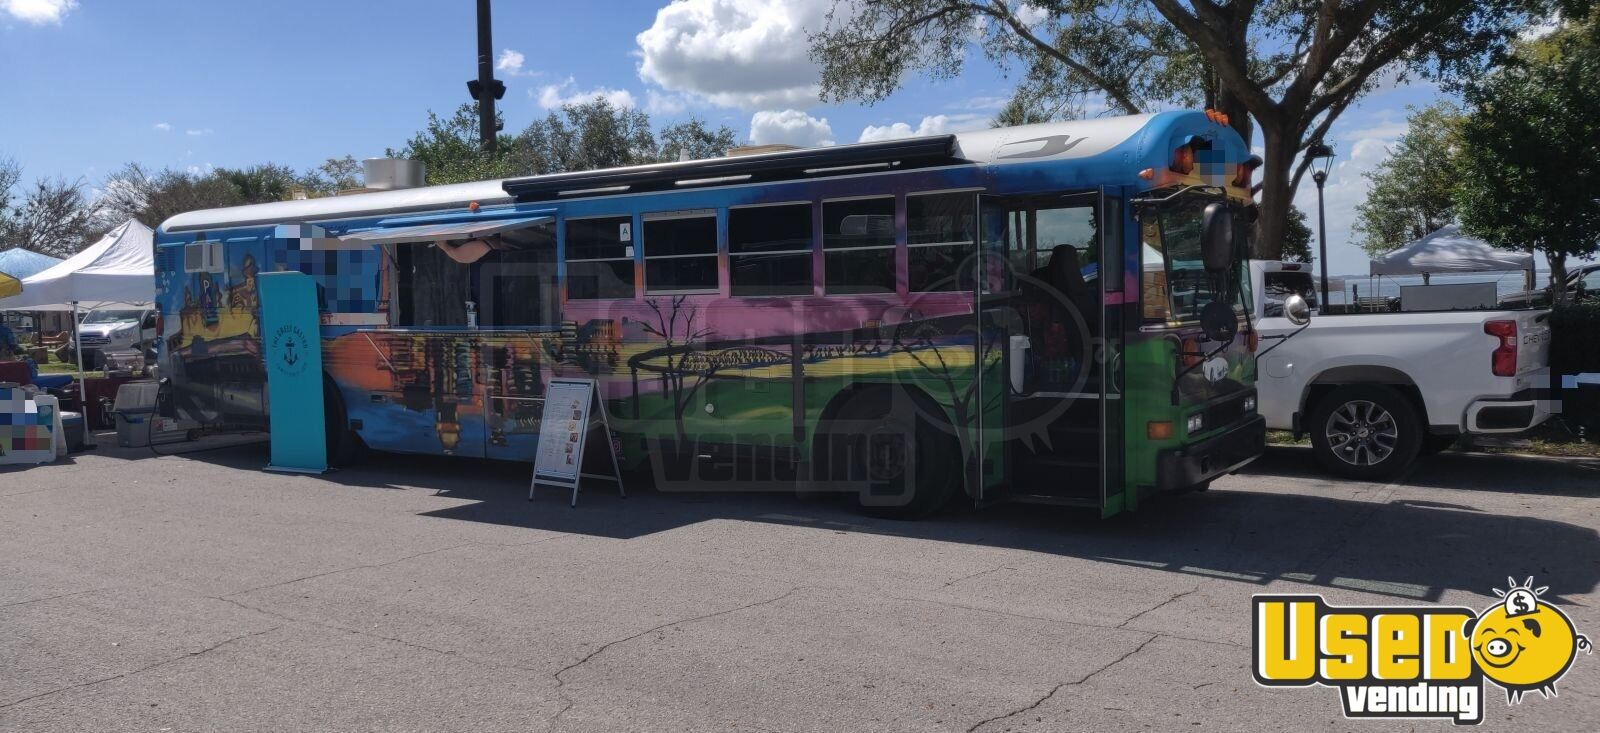 Bluebird Bus All American 2003 Diesel Exotic Food Truck for Sale in Florida!